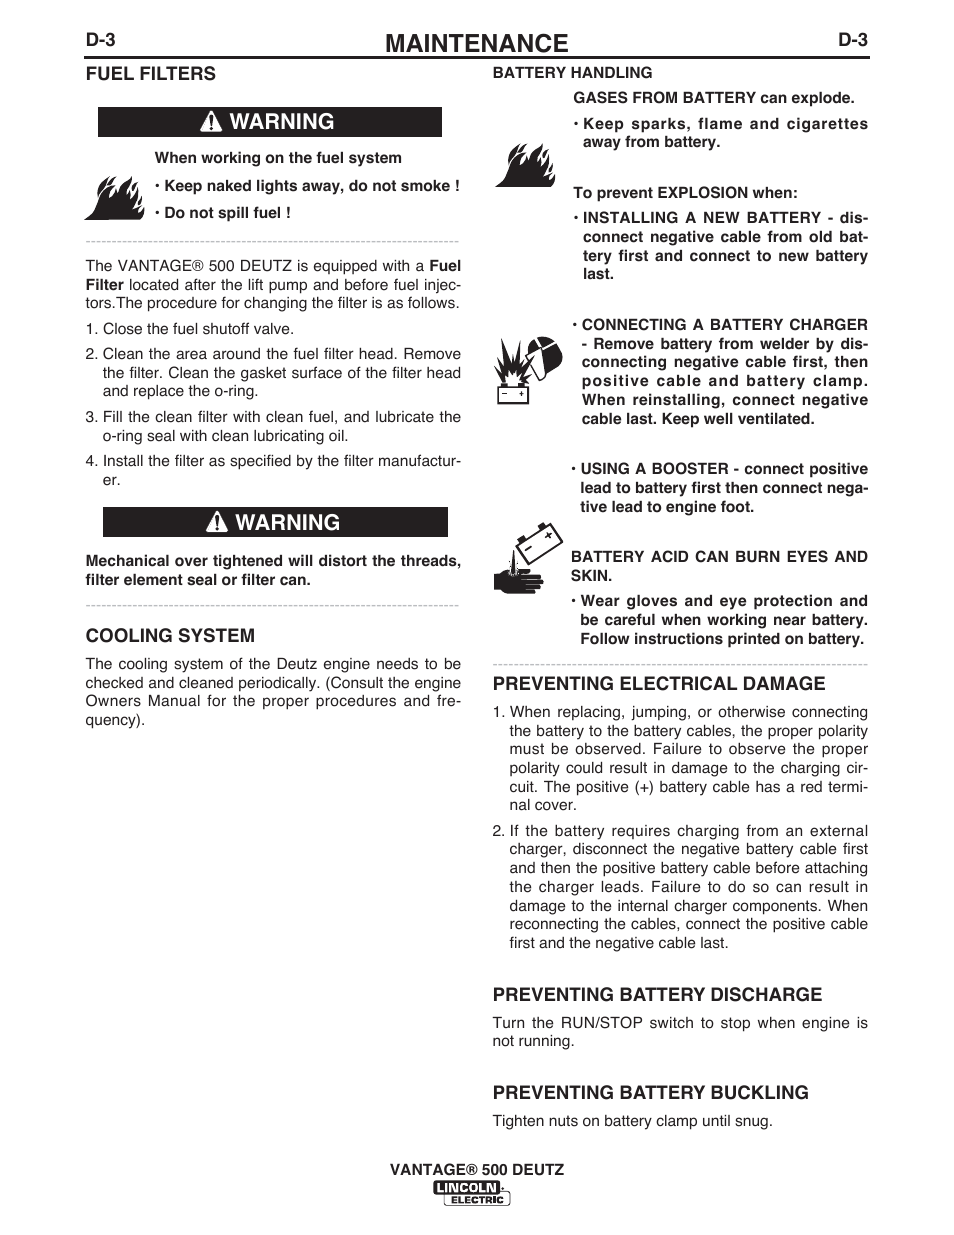 Maintenance Warning Lincoln Electric Im954 Vantage 500 Deutz User Fuel Filters Manual Page 31 53